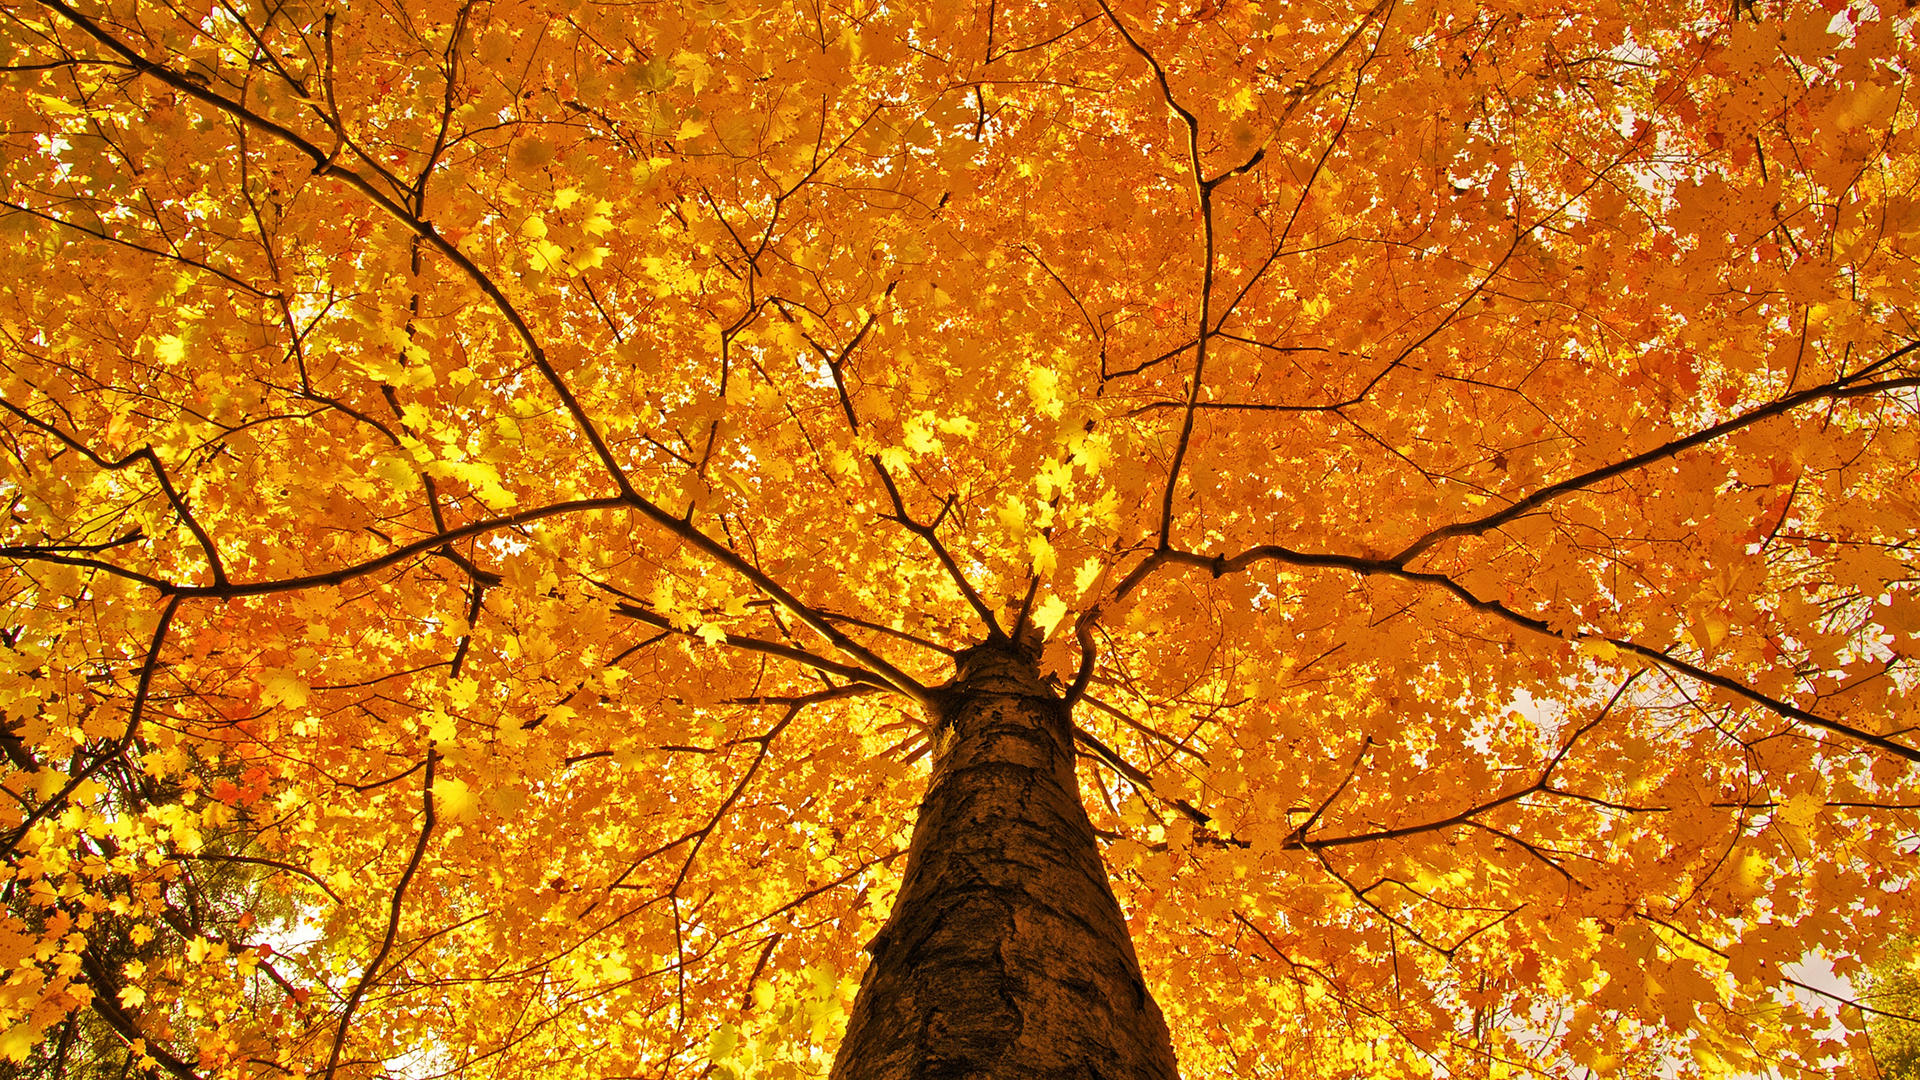 Nature Trees Leaves Color Yellow Autumn Wallpaper 1920x1080